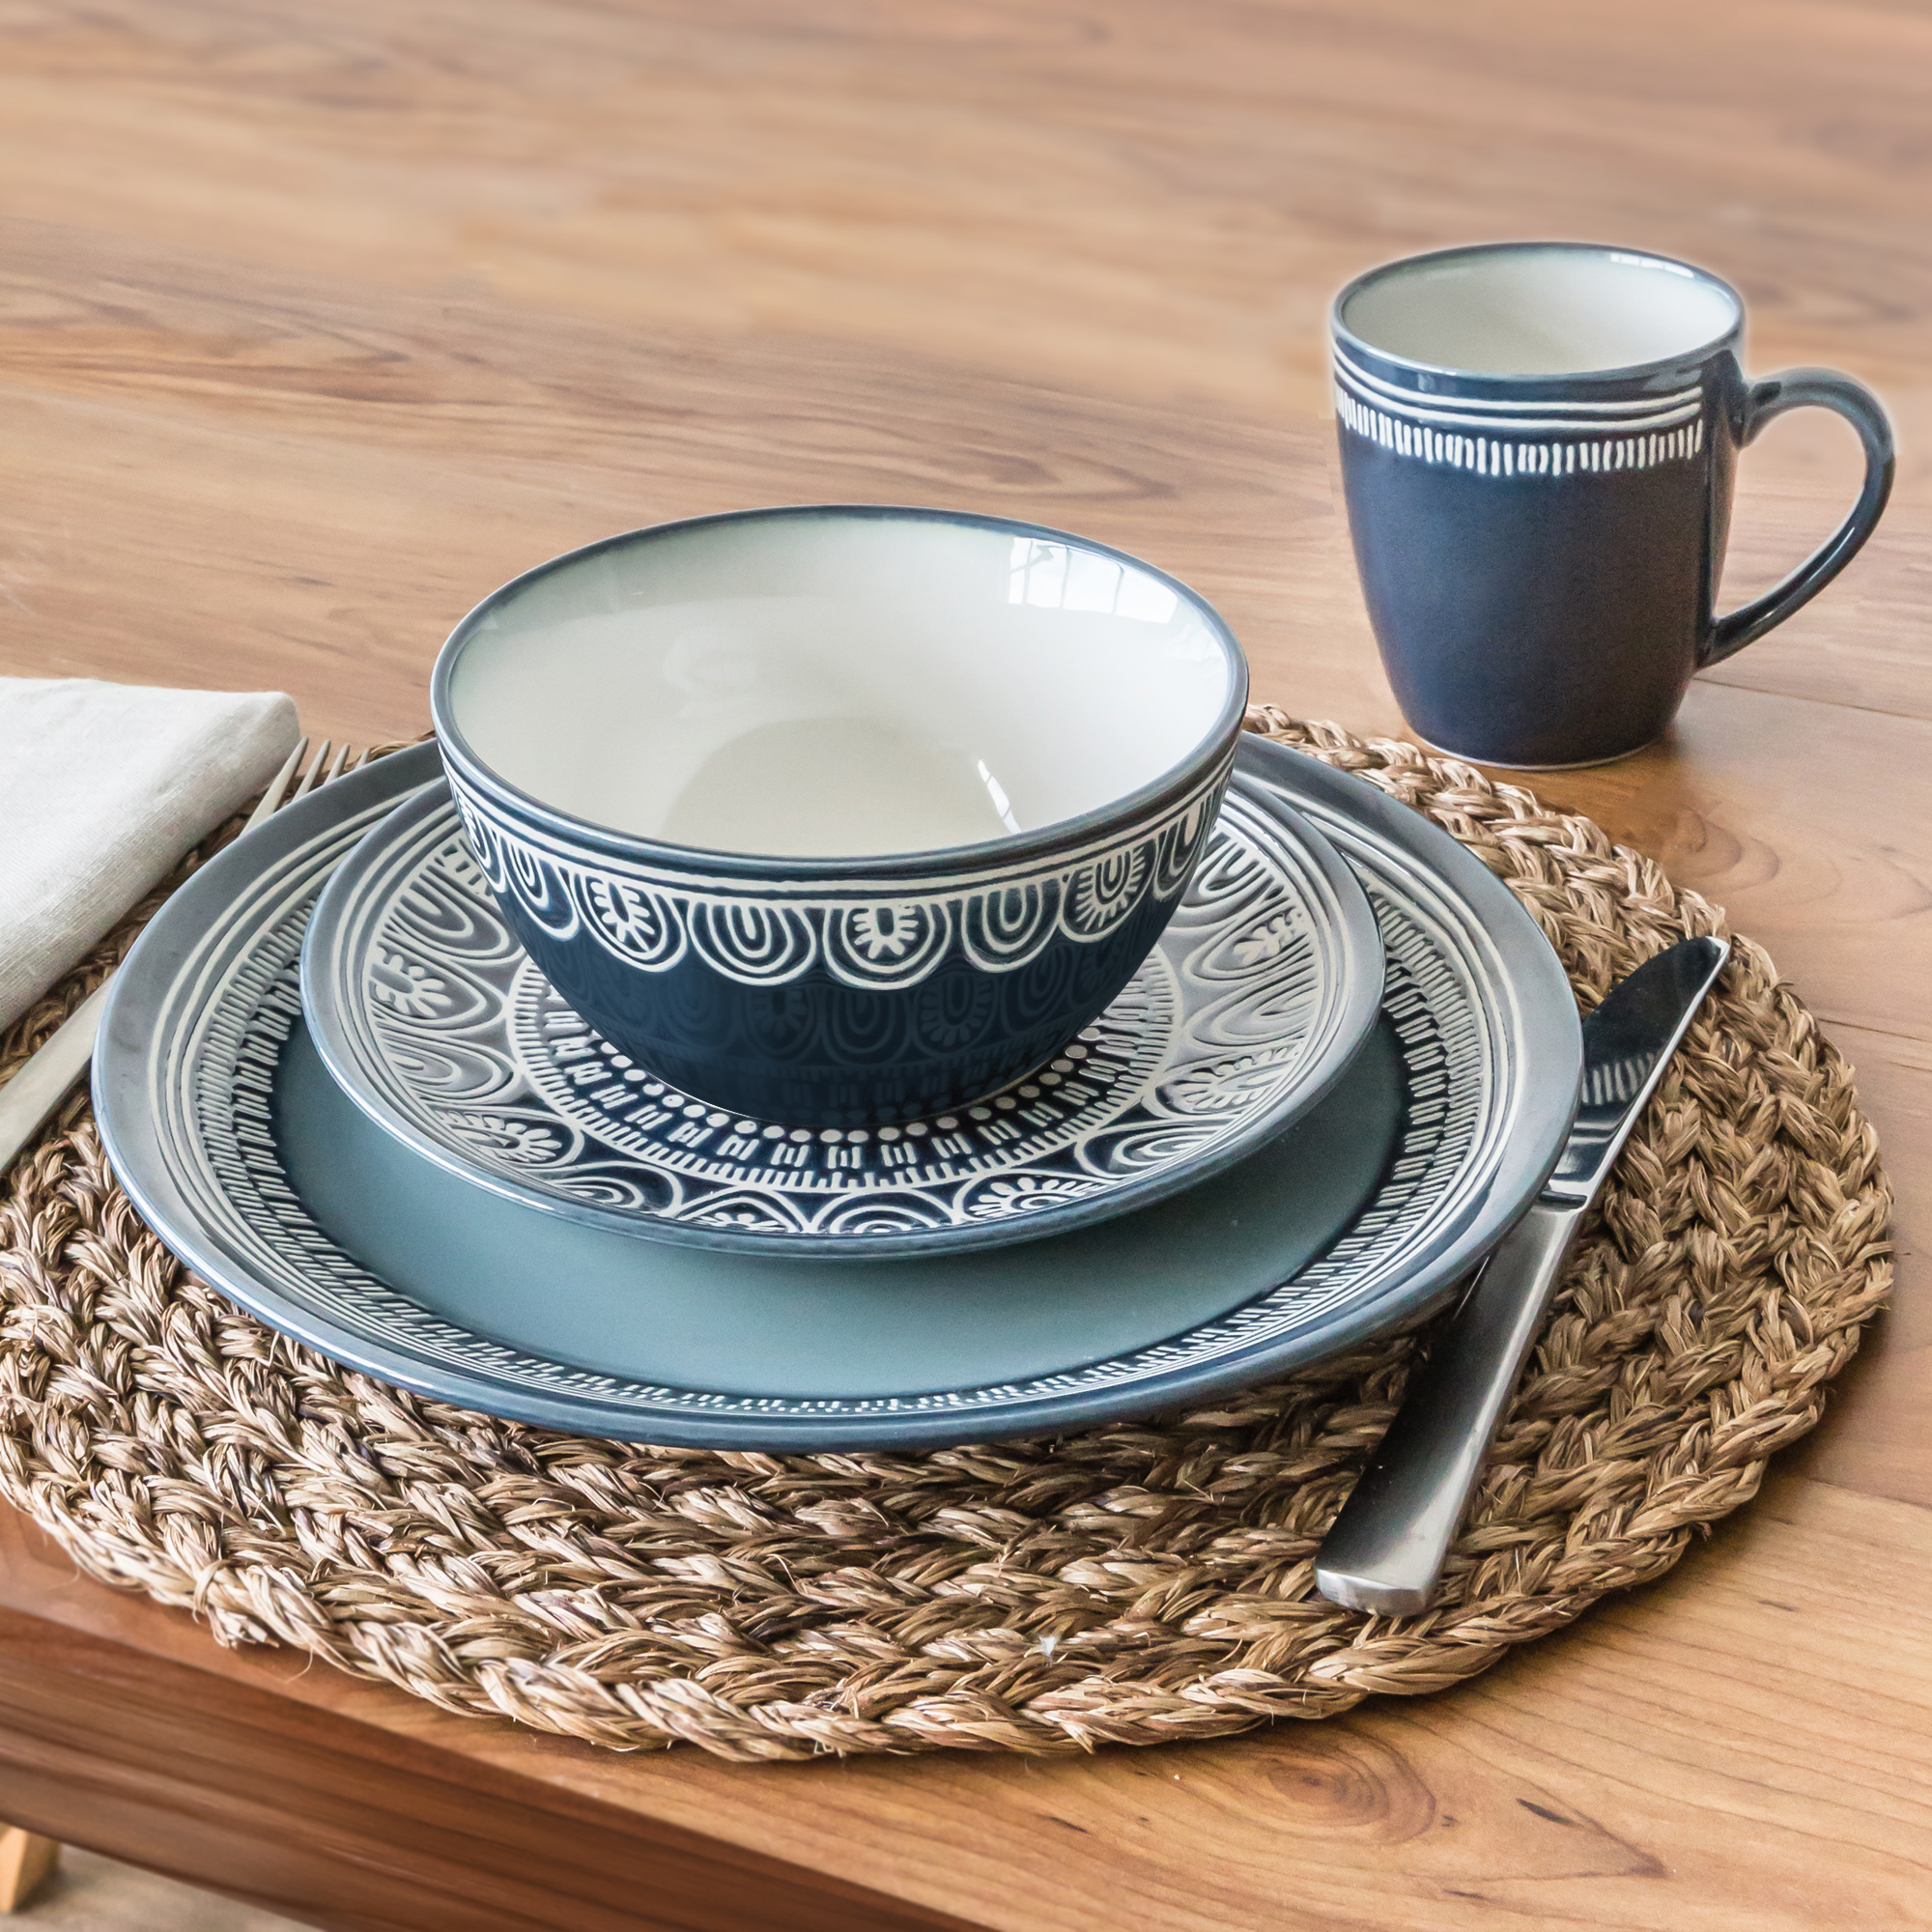 Better Homes and Gardens Teal Medallion 16 Piece Dinnerware Set Dark Teal & Better Homes and Gardens Teal Medallion 16 Piece Dinnerware Set ...